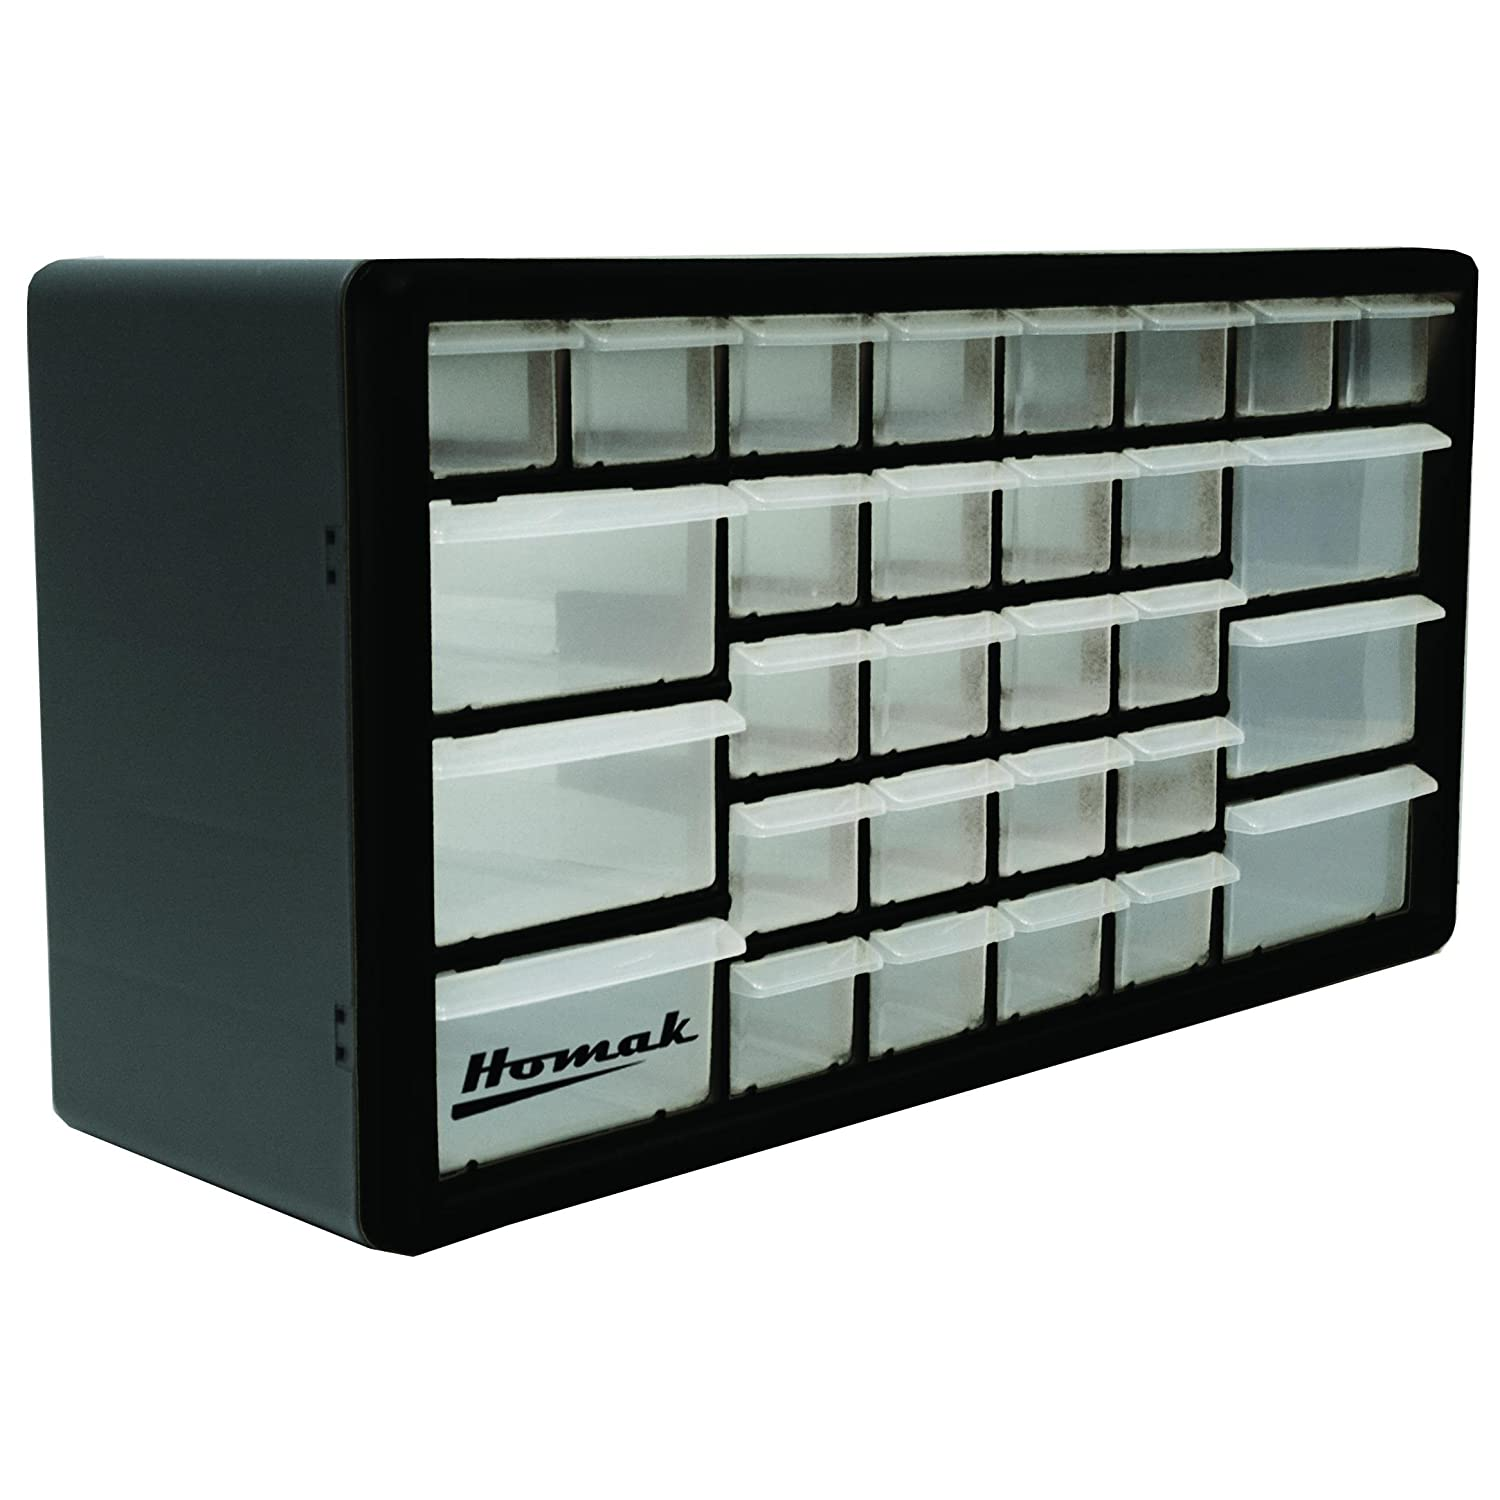 Homak 30-Drawer Parts Organizer Black HA01030102 - Hvlp Sprayers - Amazon.com  sc 1 st  Amazon.com & Homak 30-Drawer Parts Organizer Black HA01030102 - Hvlp Sprayers ...